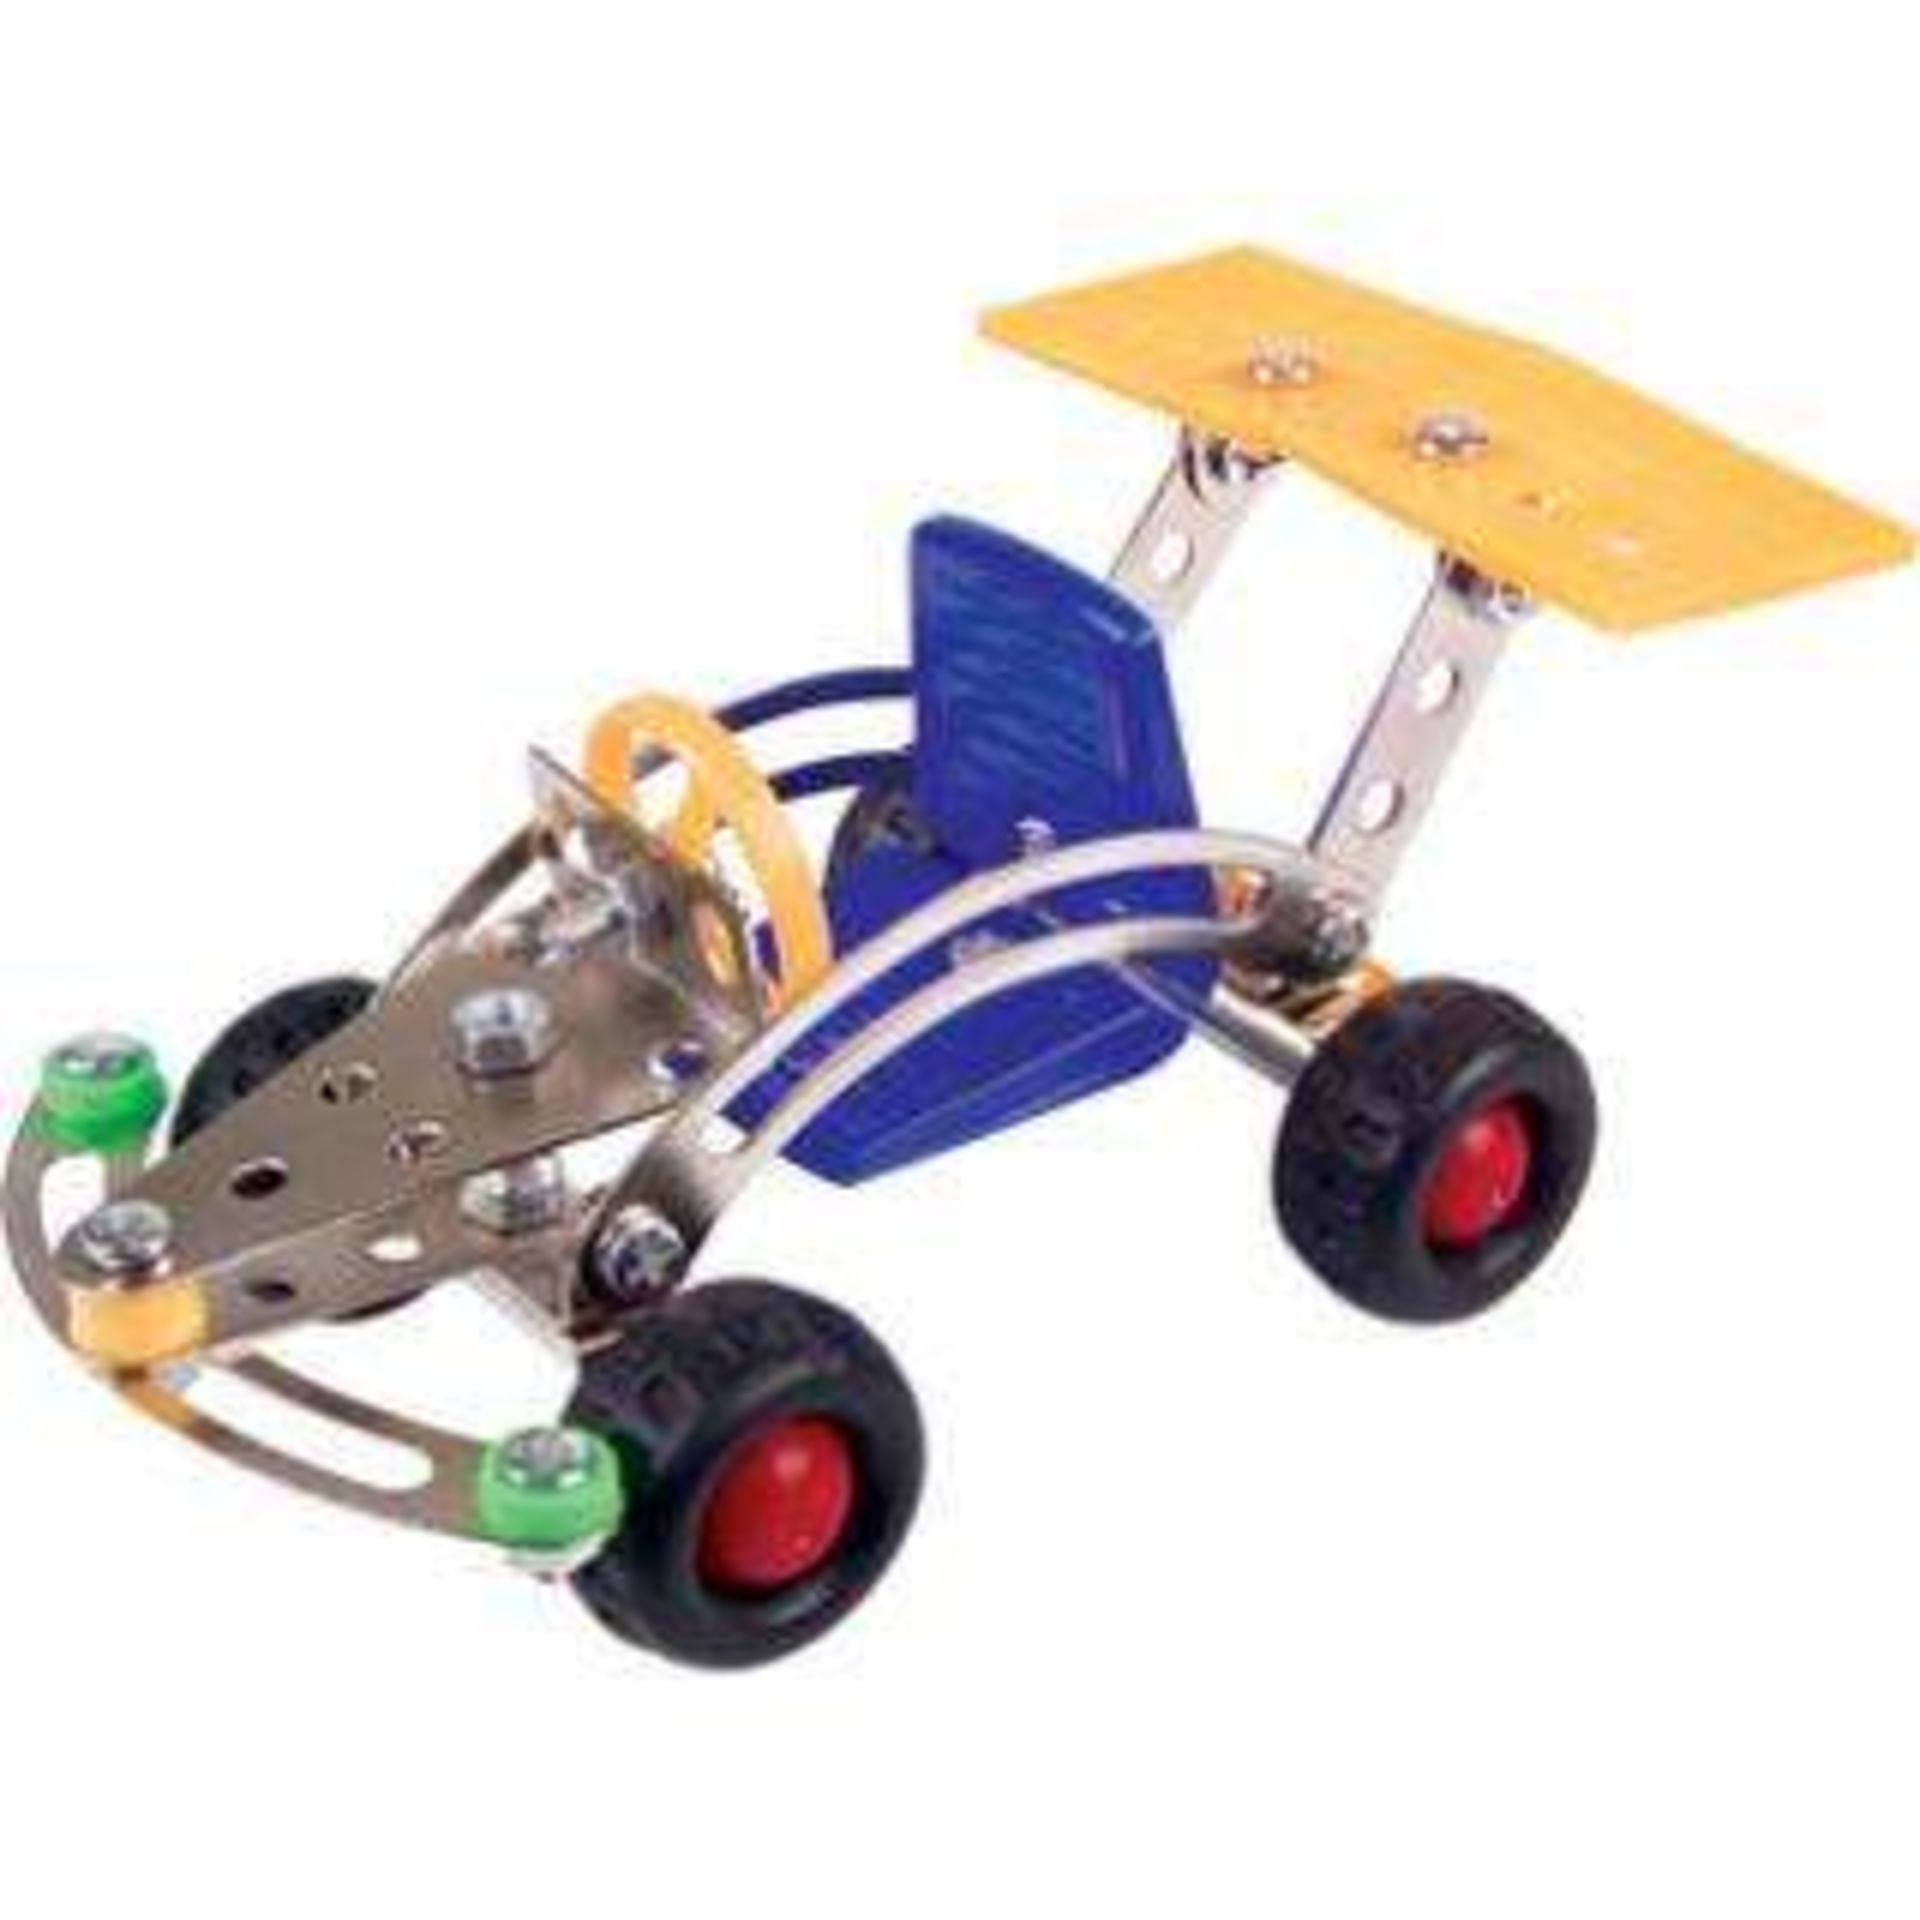 Lot 10794 - V Brand New Small Meccano Style Set Assorted - Builds Cars - Planes - Motorcycles etc